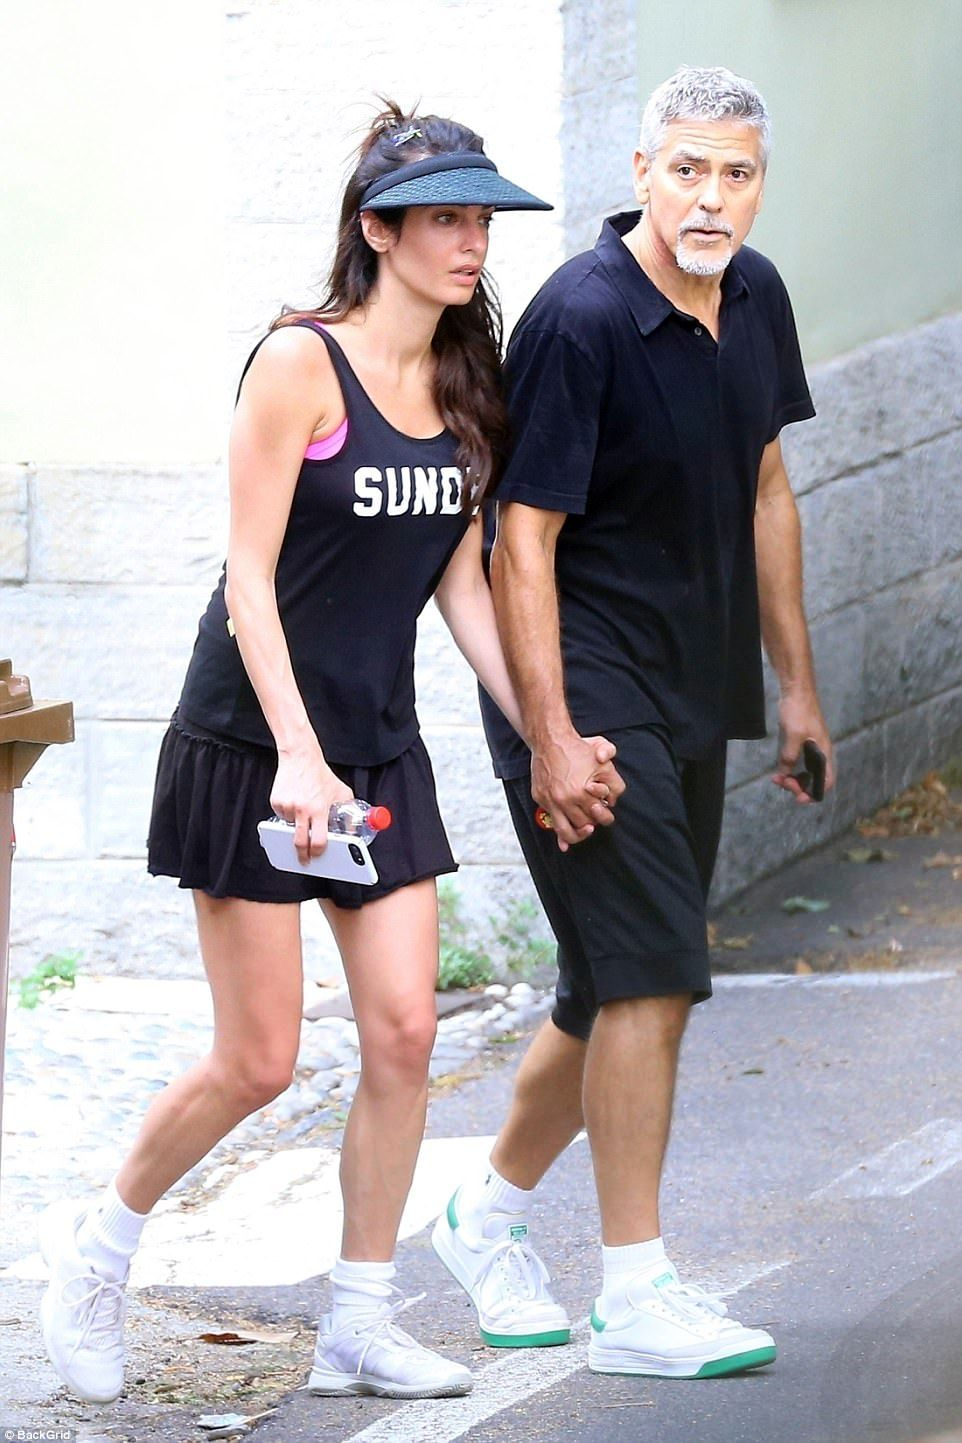 Amal Clooney and dad George take time away from the twins in Italy